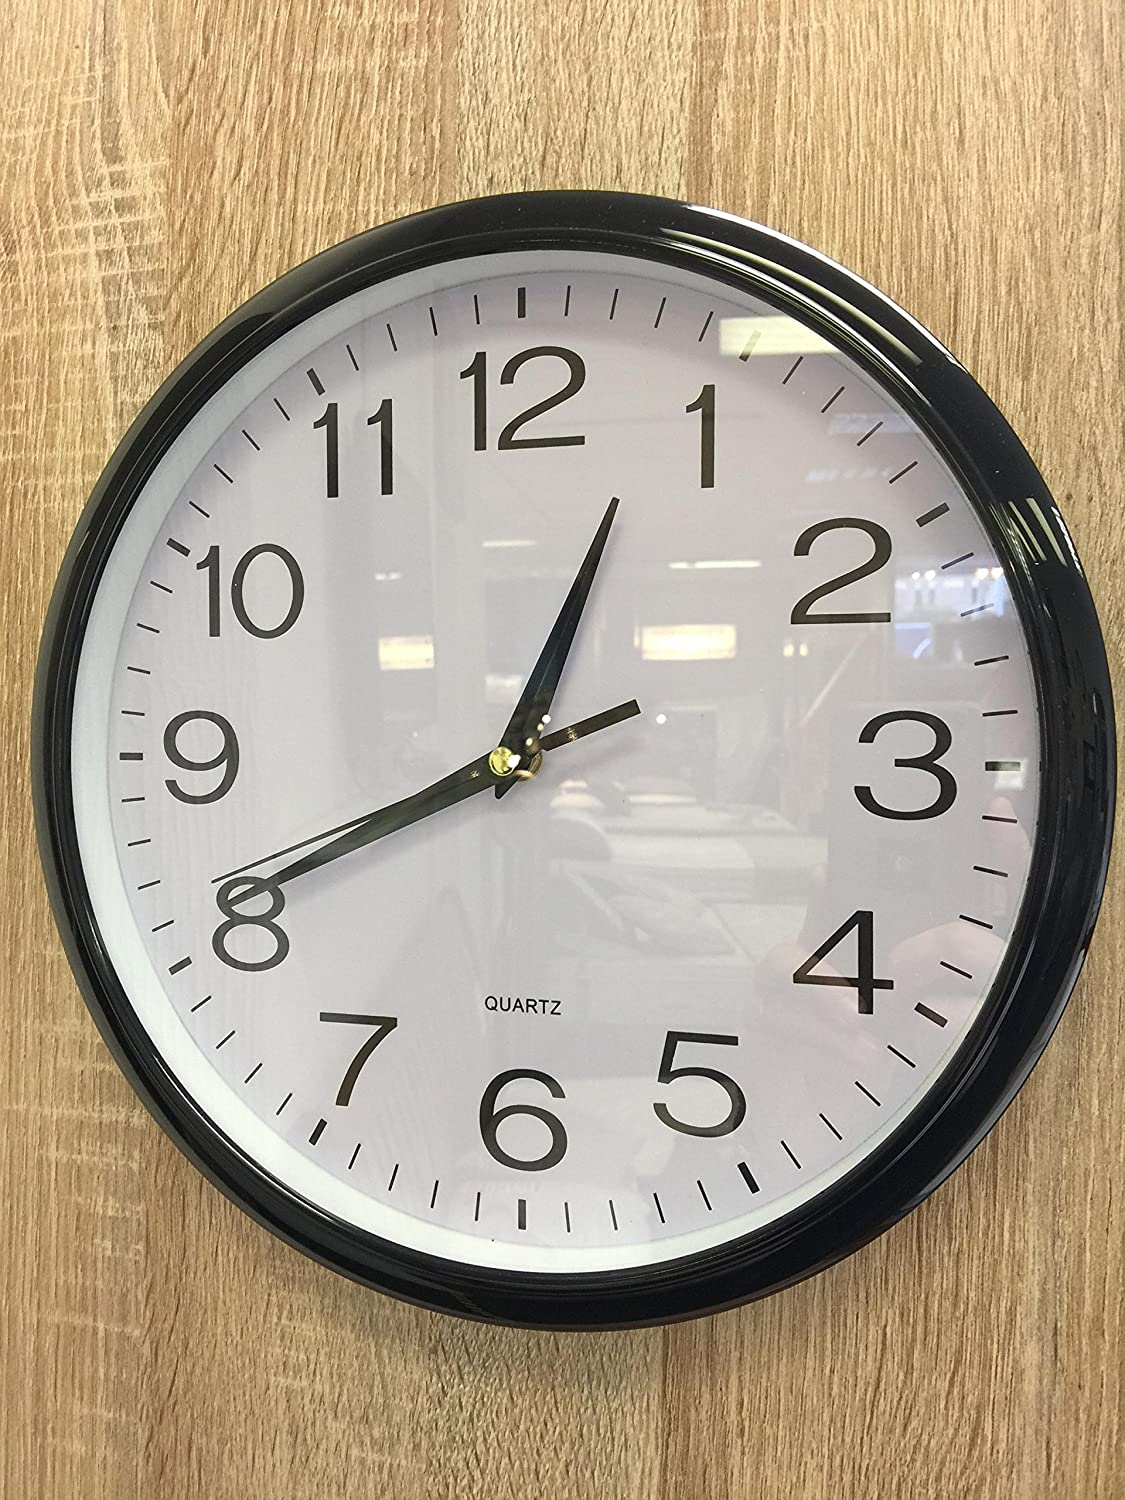 """Black Quartz """"No tick"""" silent Wall Clock- perfect as a kitchen clock or office clock or home clock. High quality Quartz movement for improved accuracy and durability. """"No tick"""" movement is ideal for those wishing a silent clock. High quality black bezel l"""